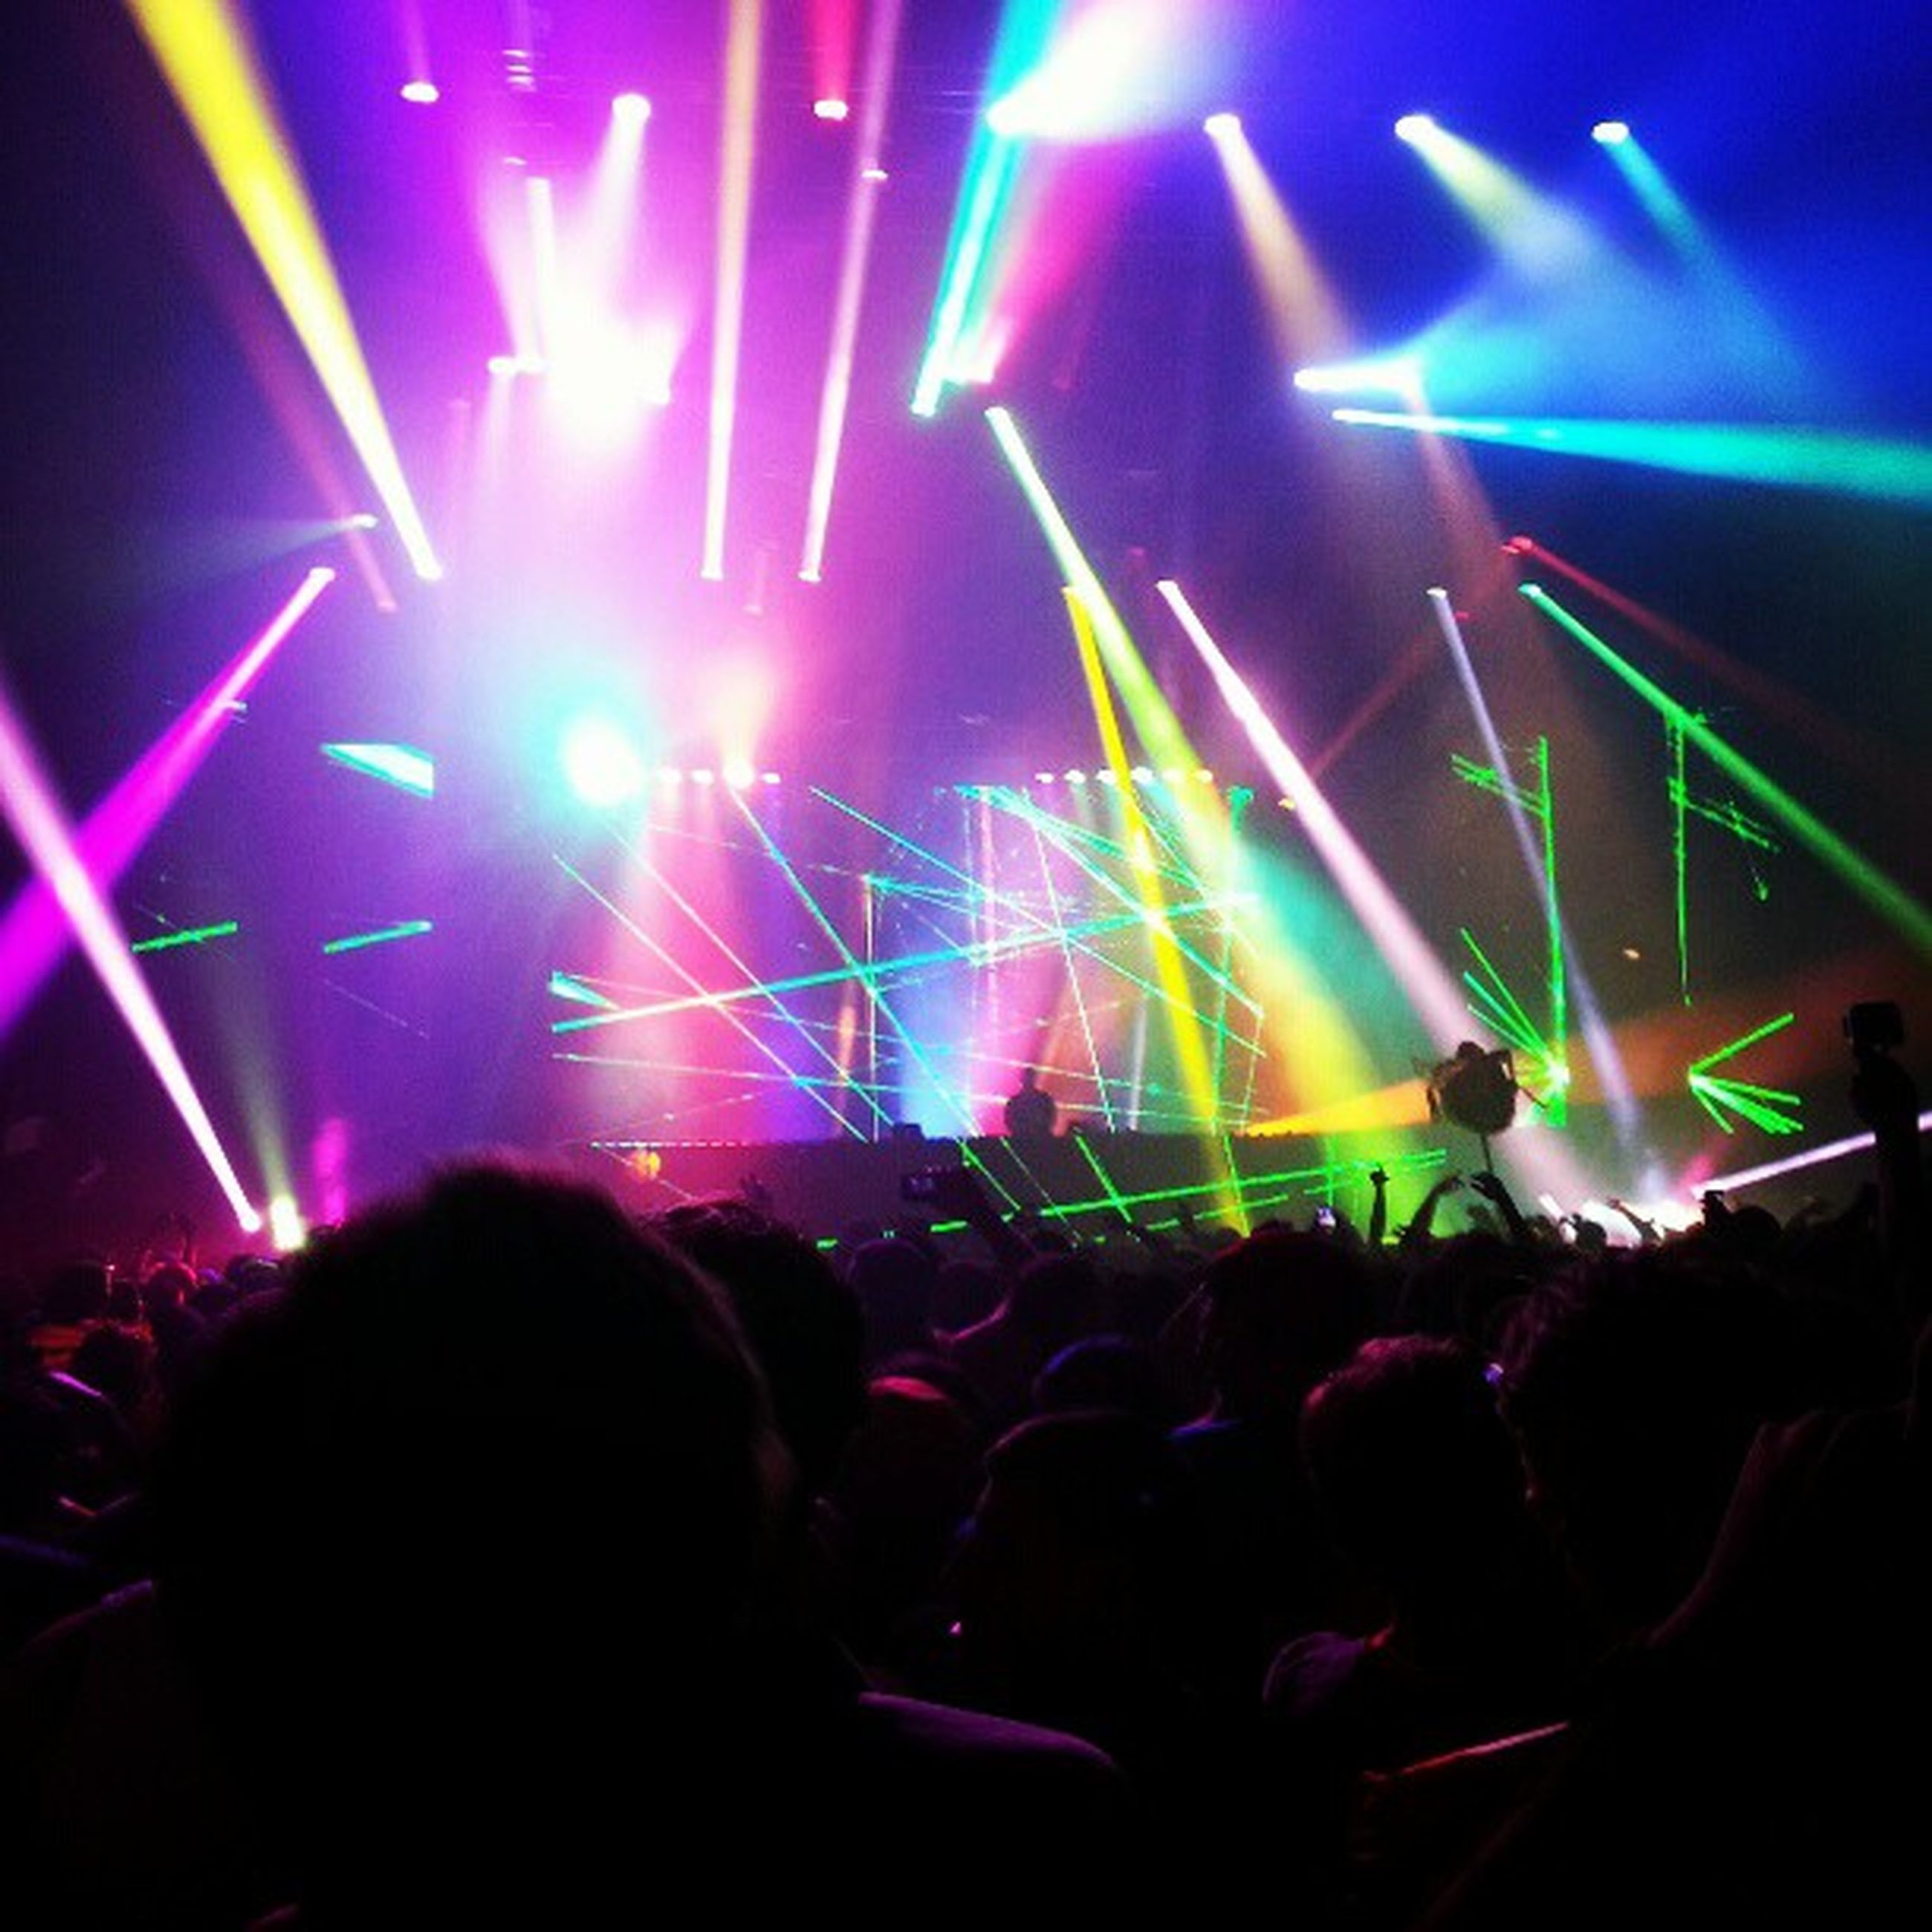 illuminated, large group of people, arts culture and entertainment, nightlife, music, night, enjoyment, crowd, person, indoors, stage - performance space, lifestyles, event, performance, men, leisure activity, youth culture, fun, popular music concert